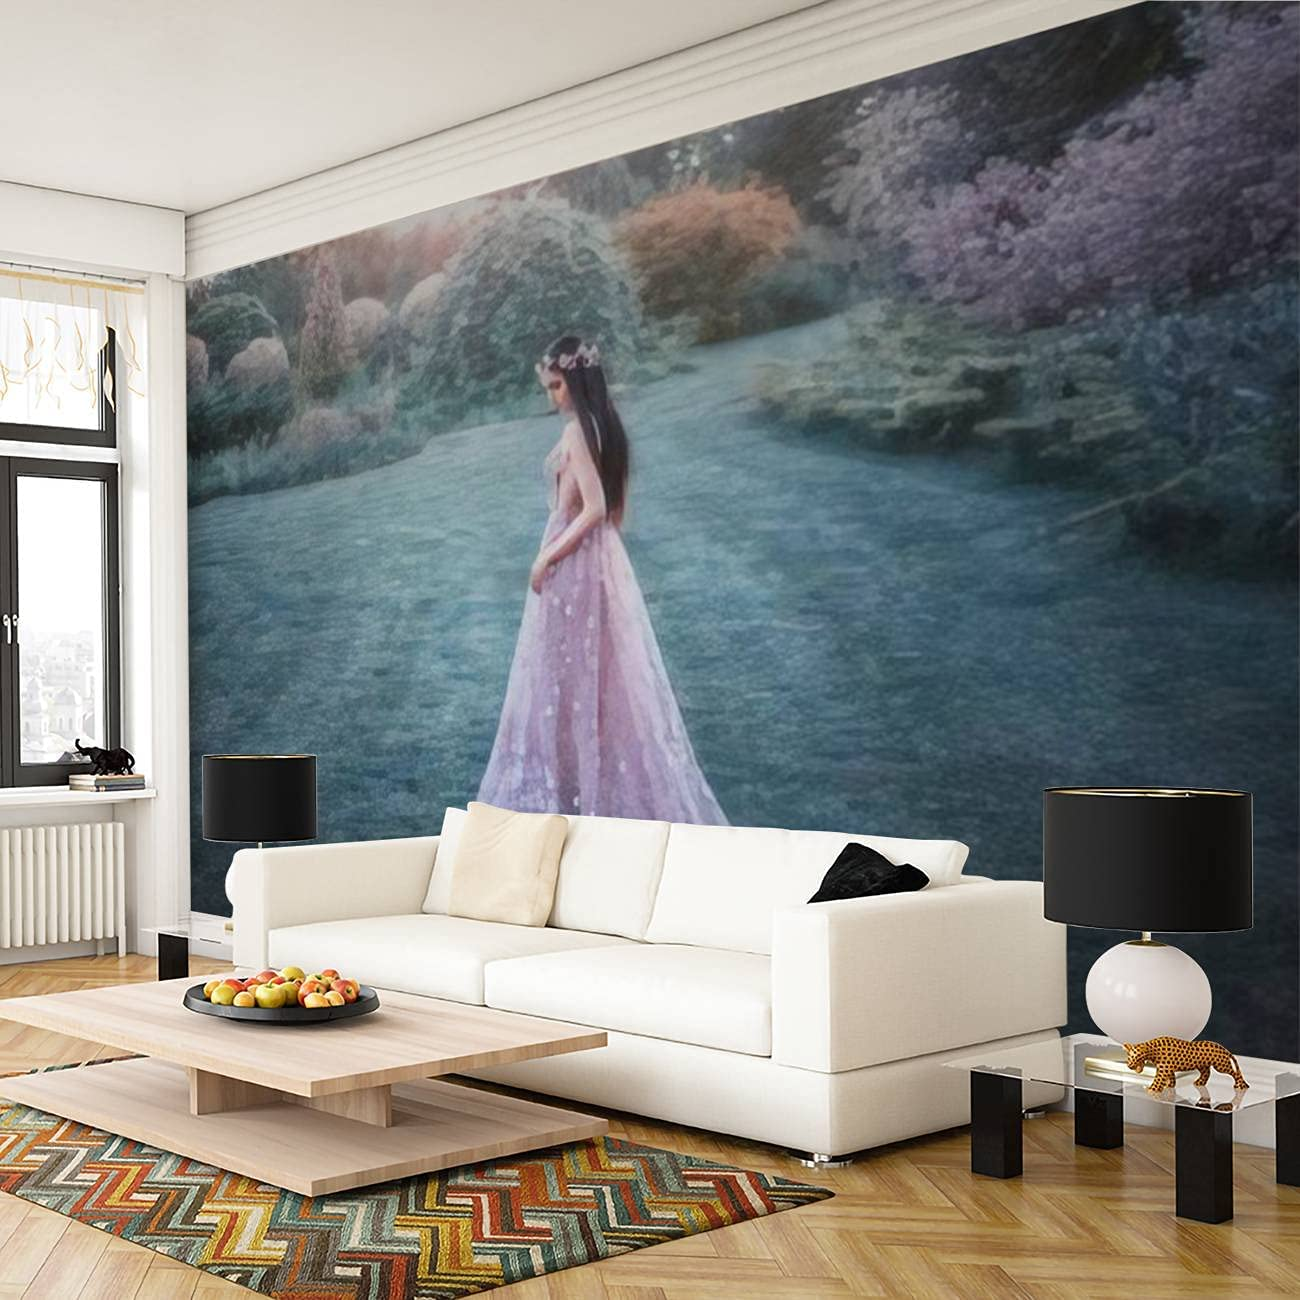 Attractive Fantasy Girl in a Fairy Garden Young elf Princess in a Removable Wall Mural Modern Design Self-Adhesive Large Wallpaper Peel and Stick Wall Stickers Home Decor